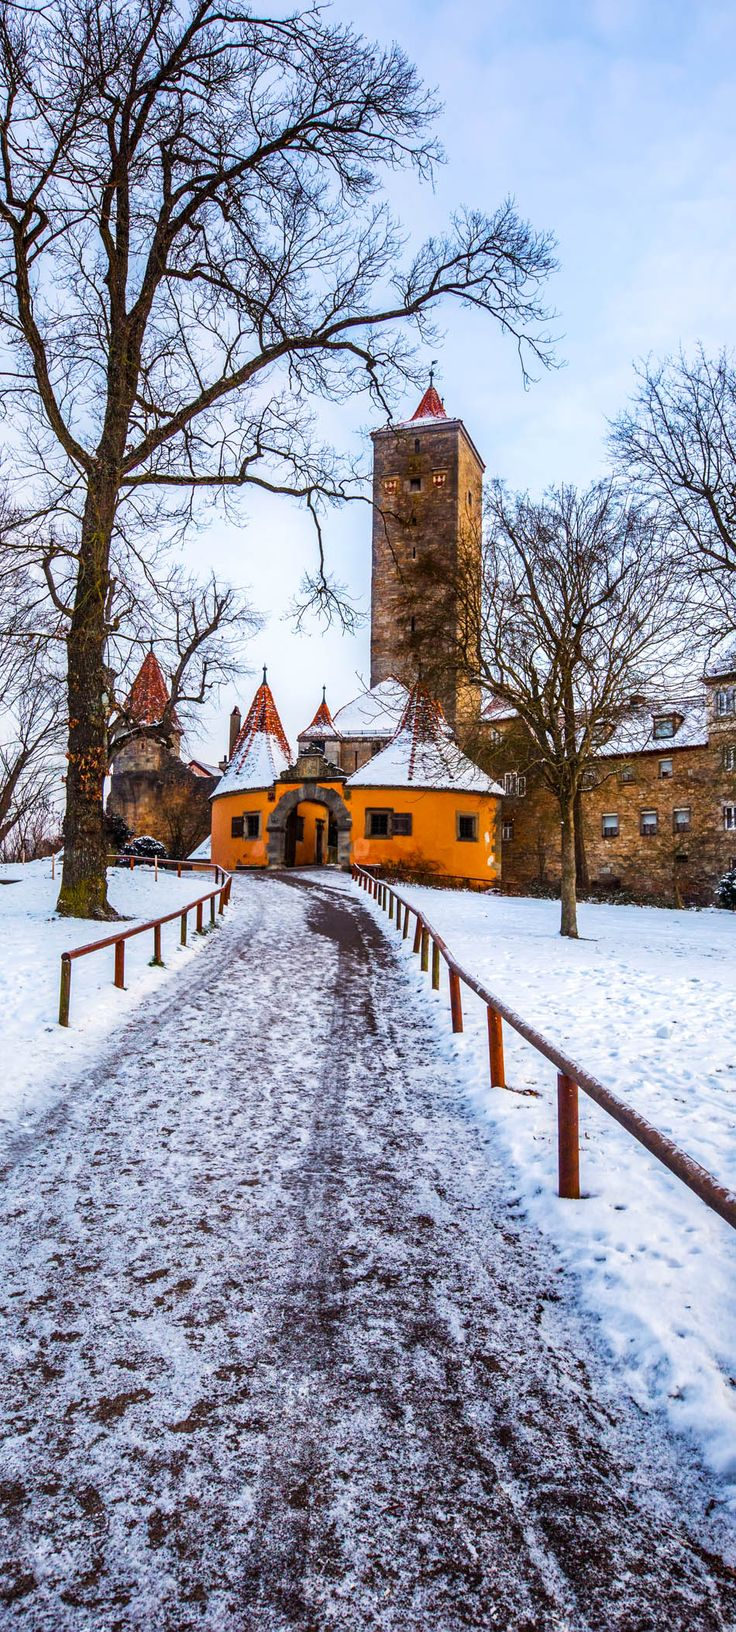 The 20 Most Stunning Fairytale Castles in Winter